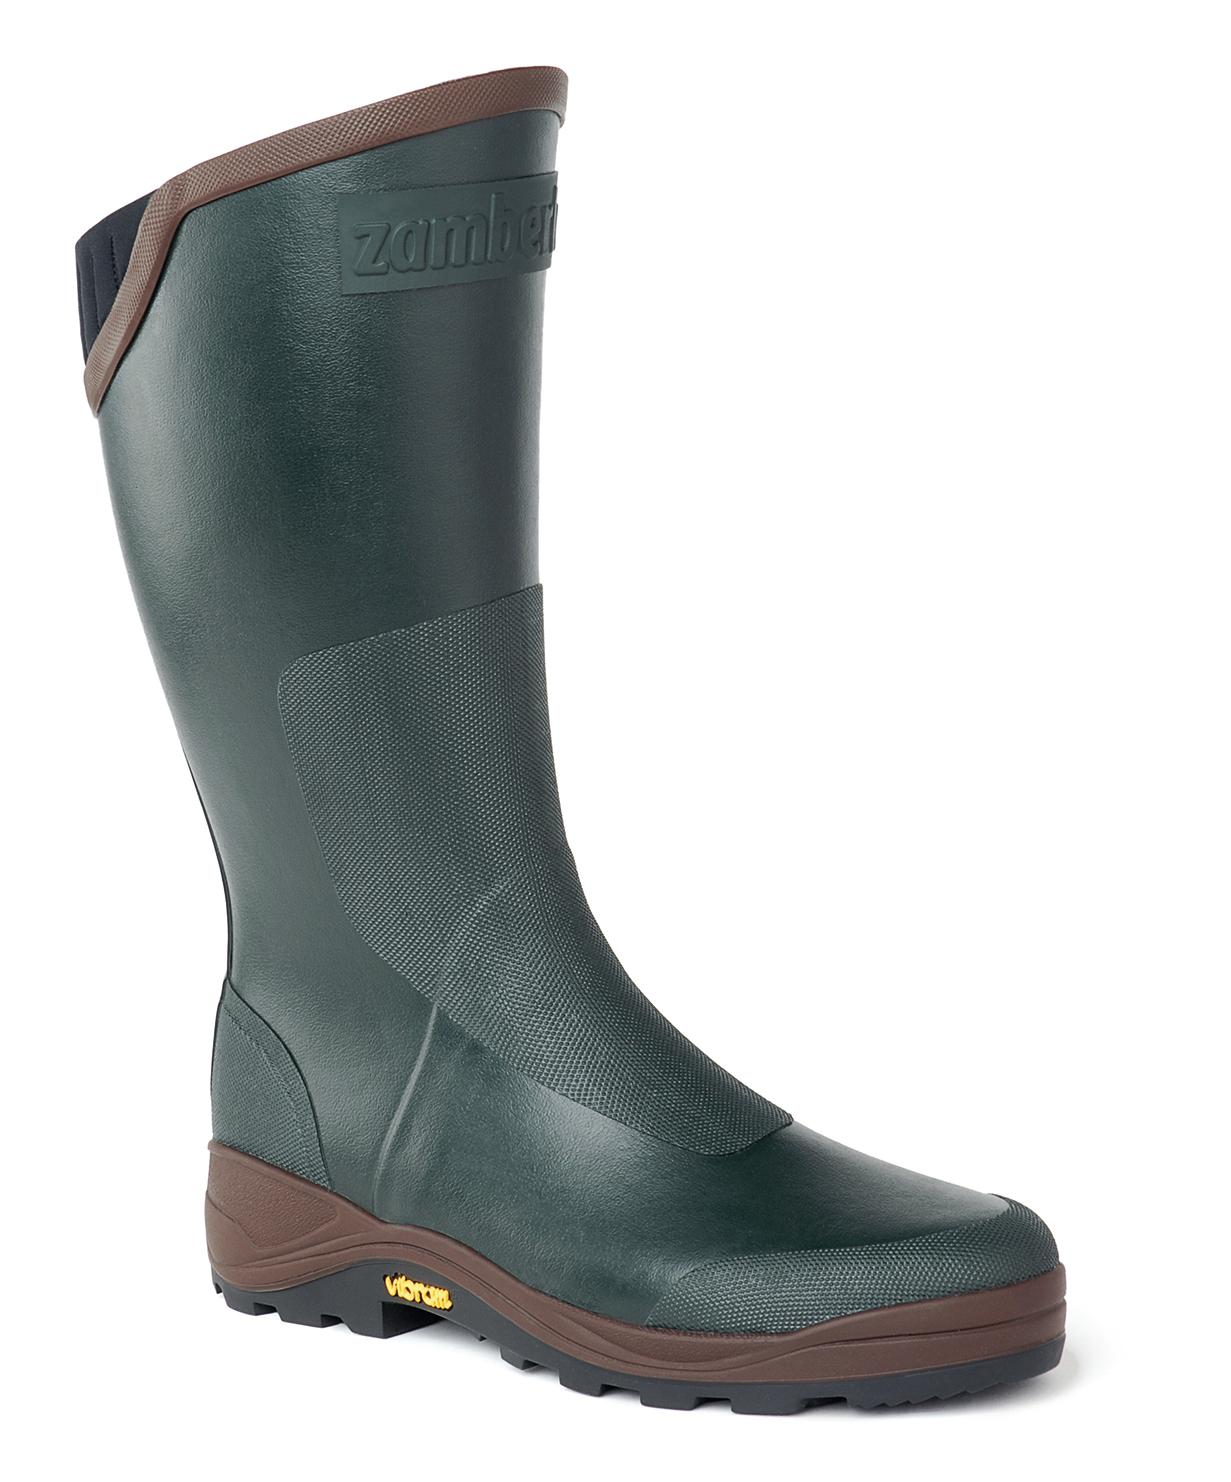 S31 BOOTS  TANZANIA P.   -   Bottes waders et cuissardes  Chasse     -   Dark Green